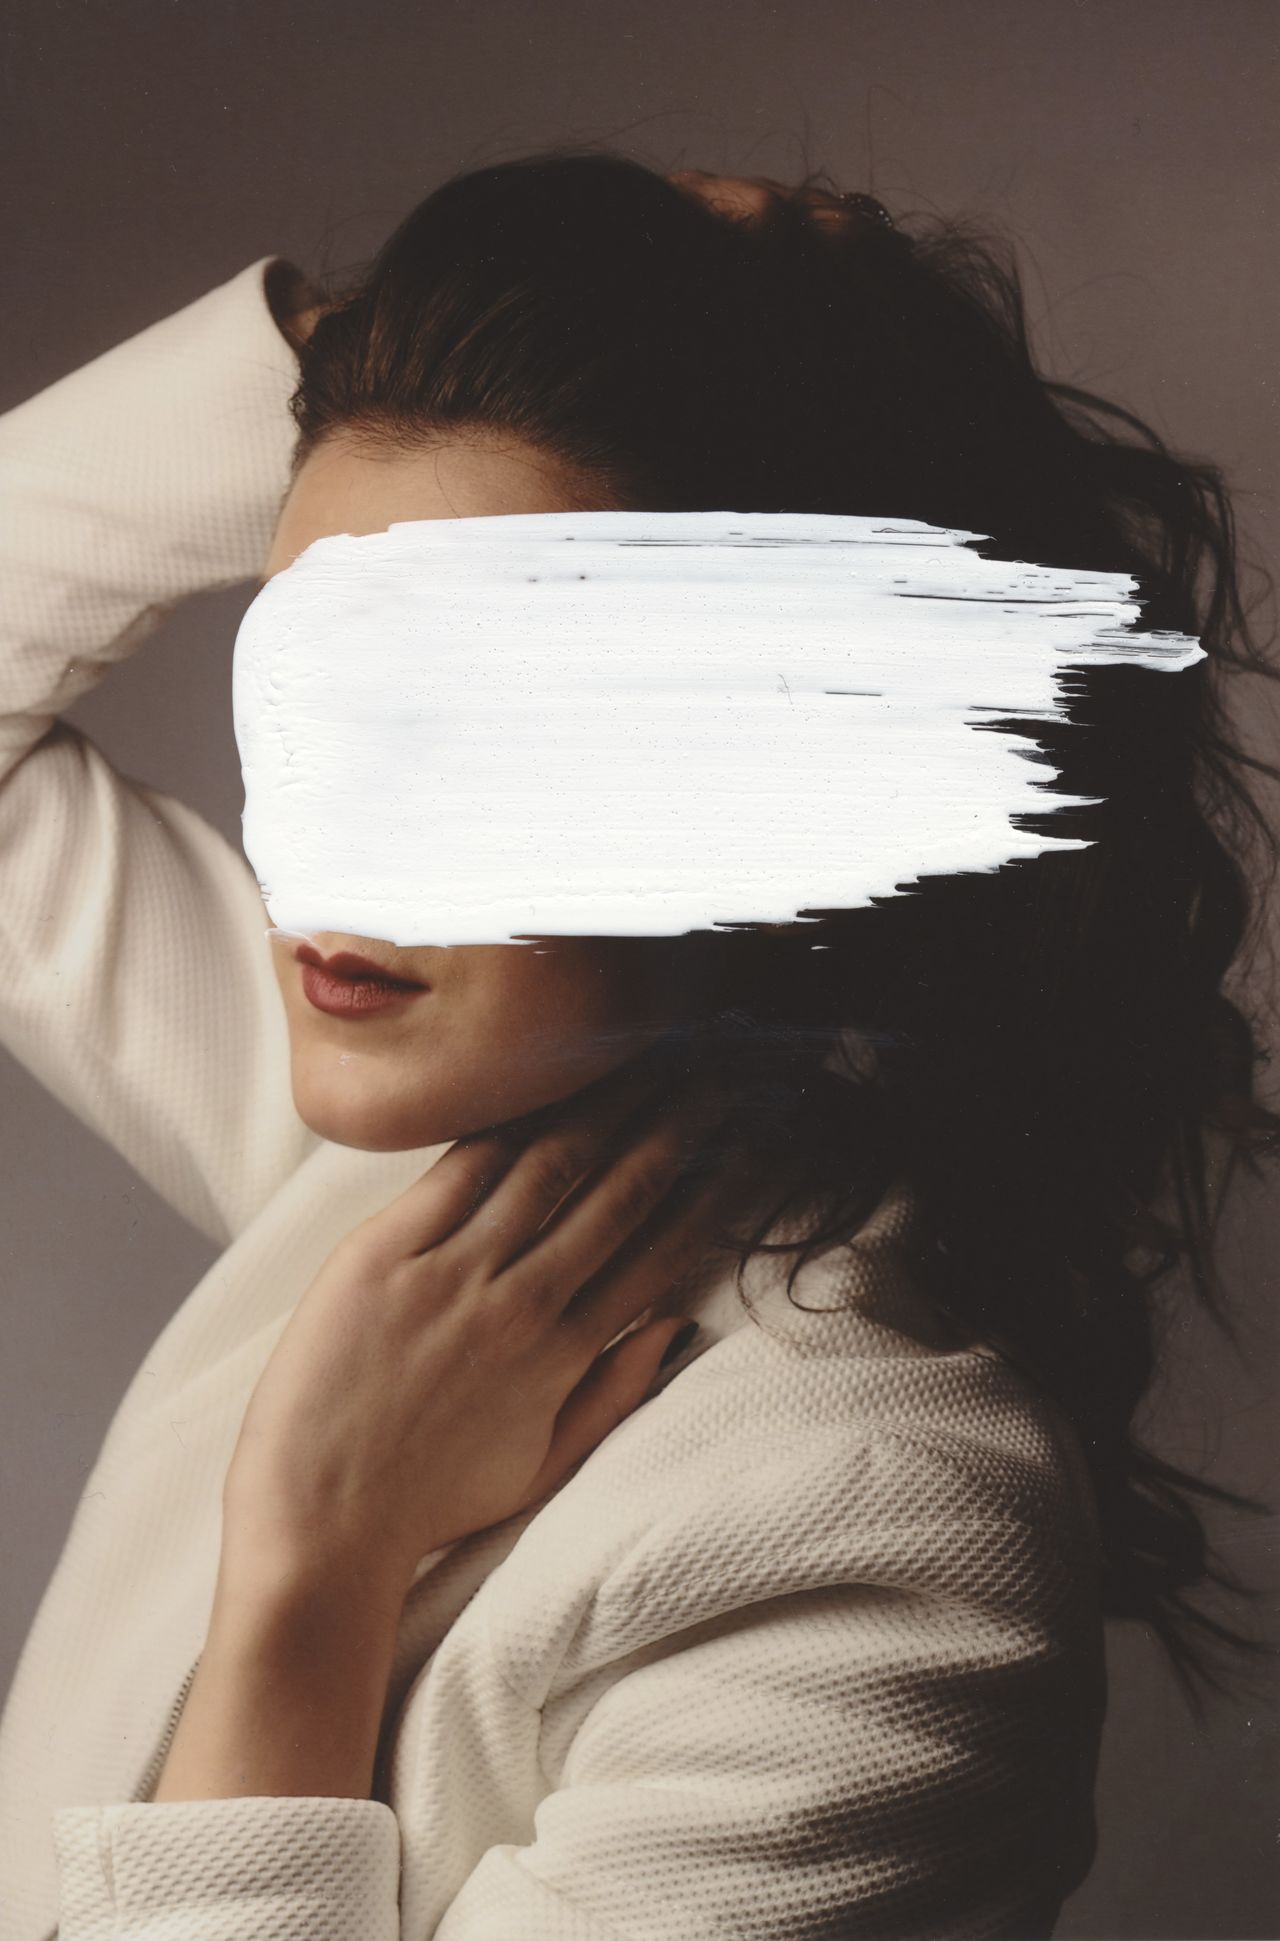 Close-up of woman with obscured face